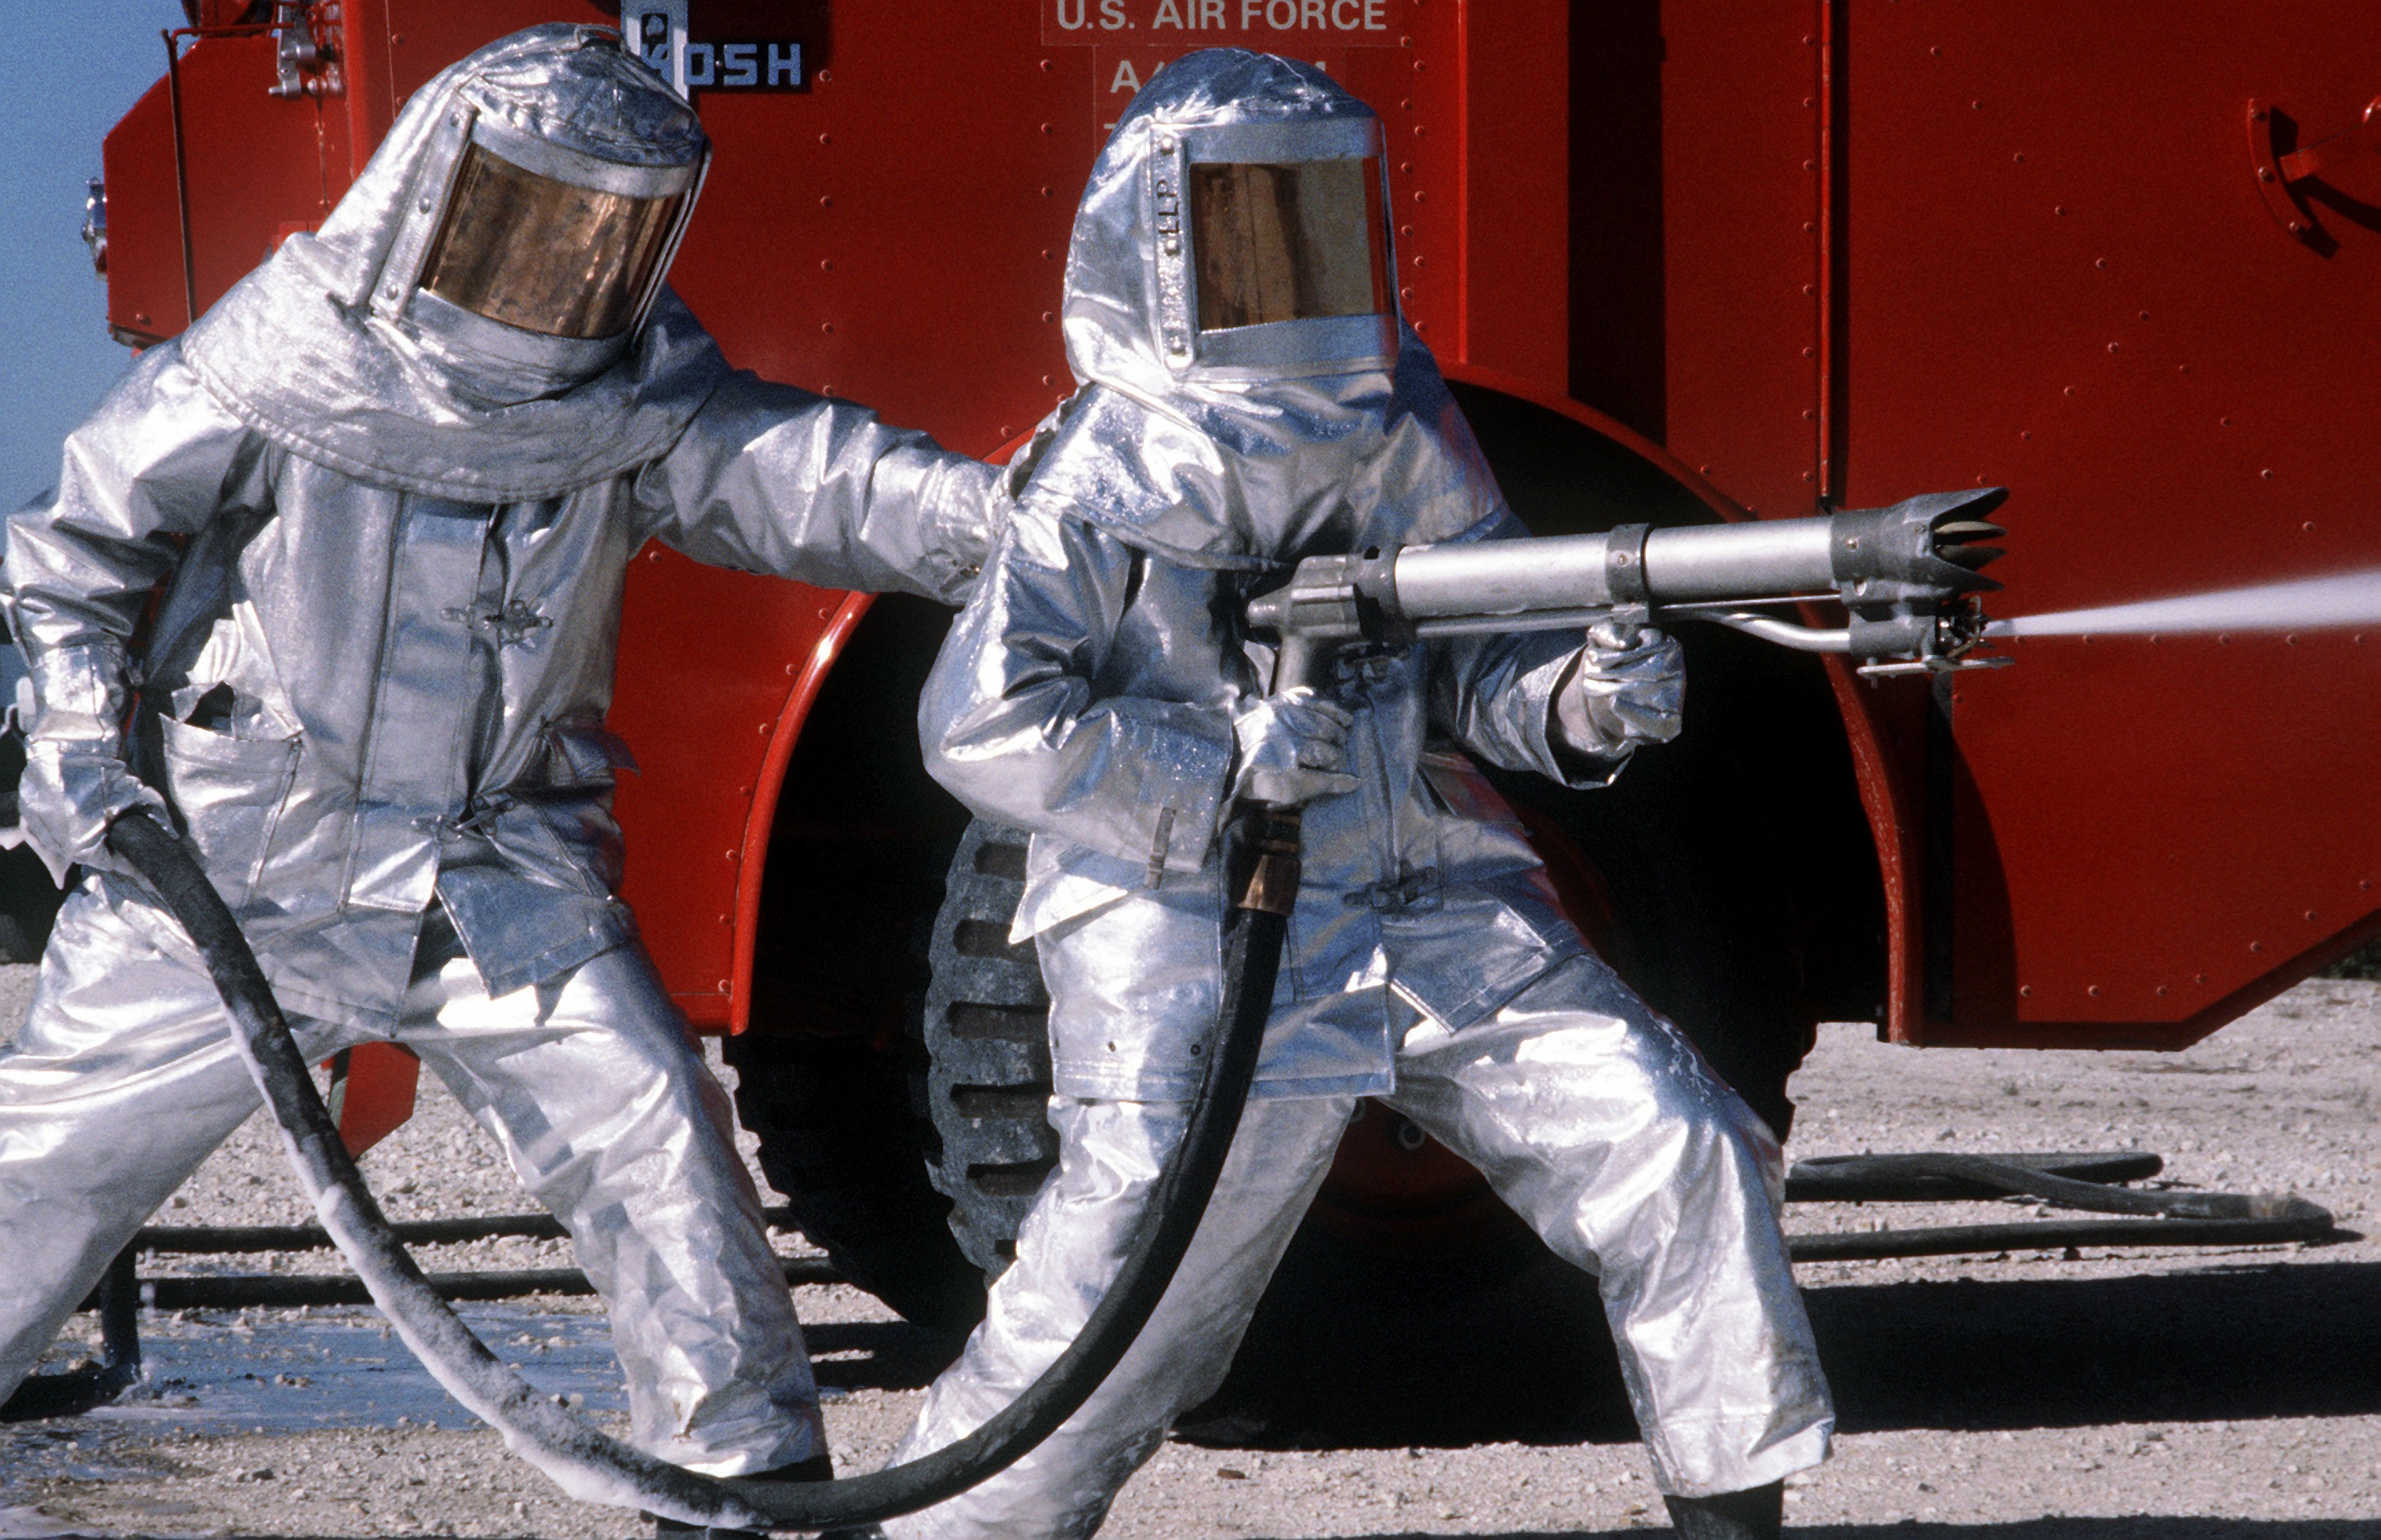 728fdfb712ae Fire proximity suit - Wikipedia